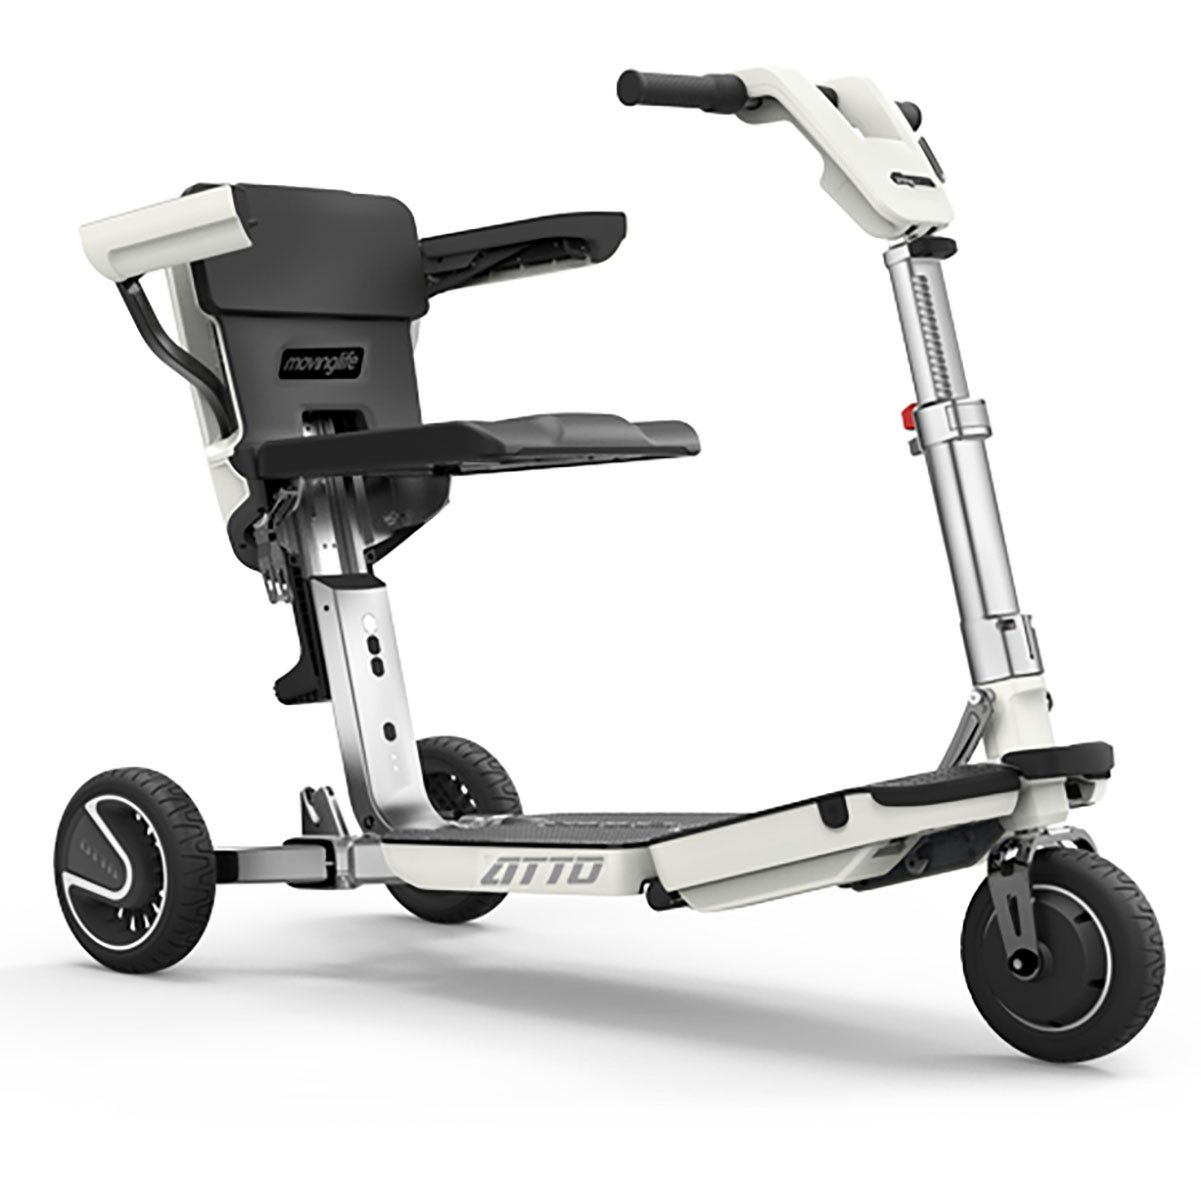 Atto travel scooter by Moving Life